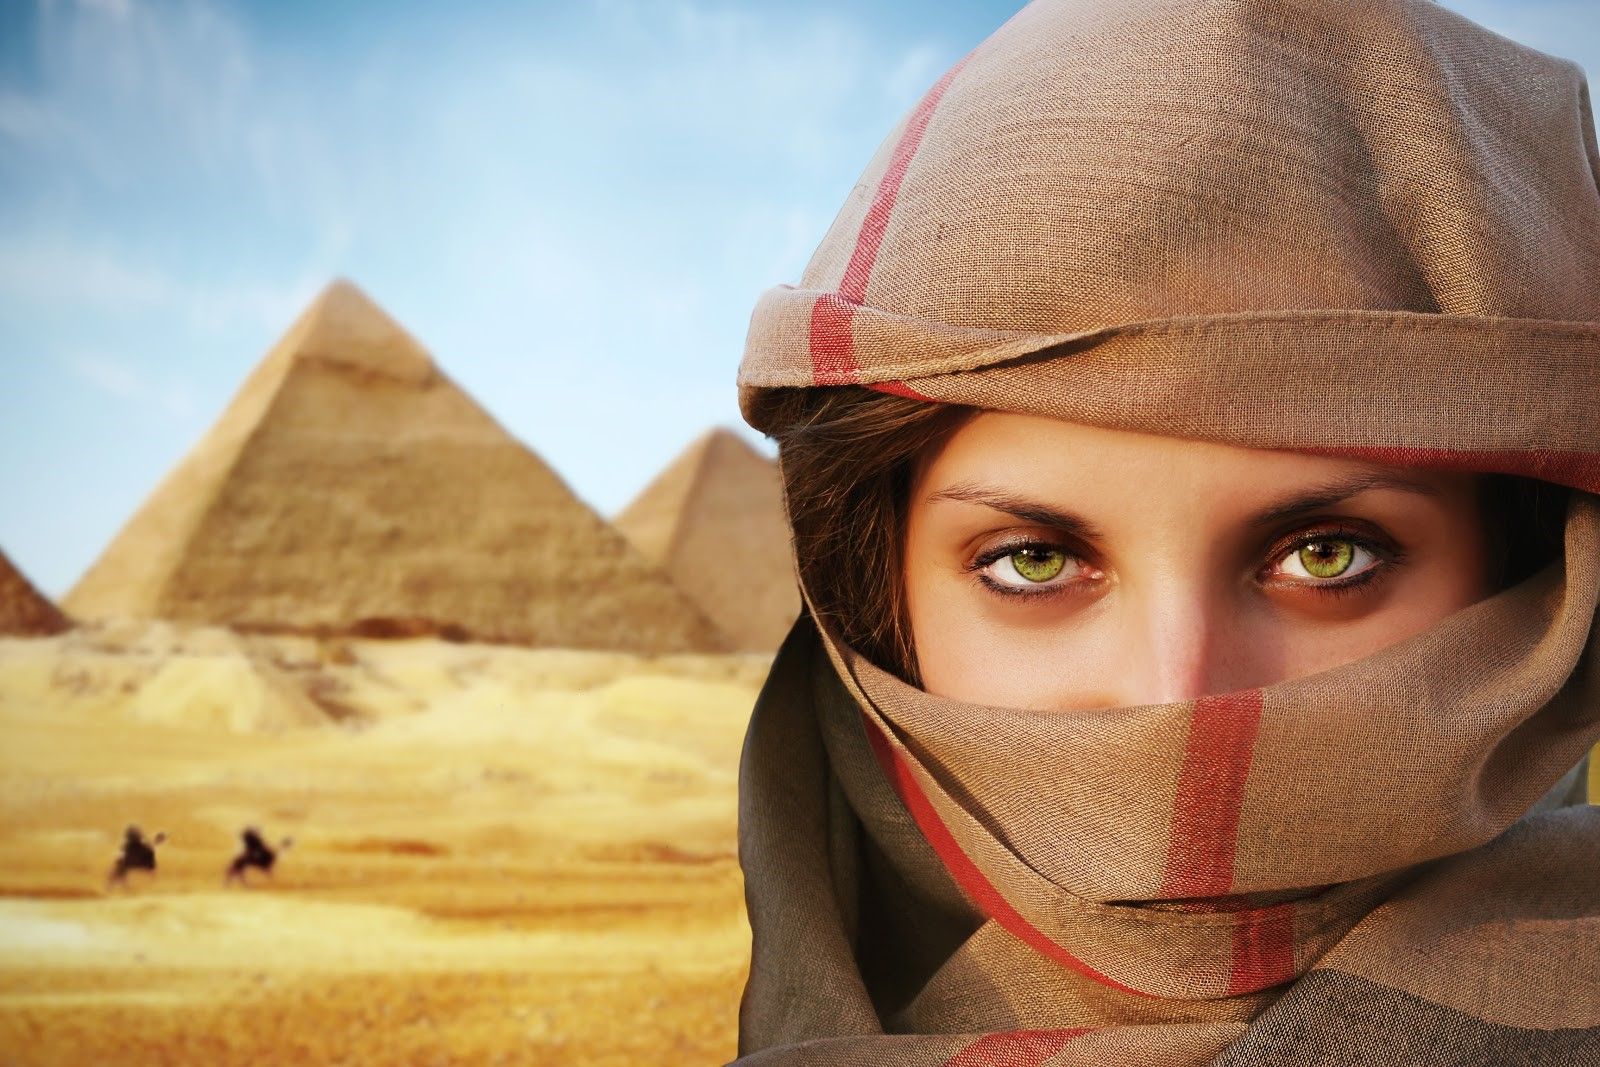 Beautiful green-eyed woman in chador and the pyramids.